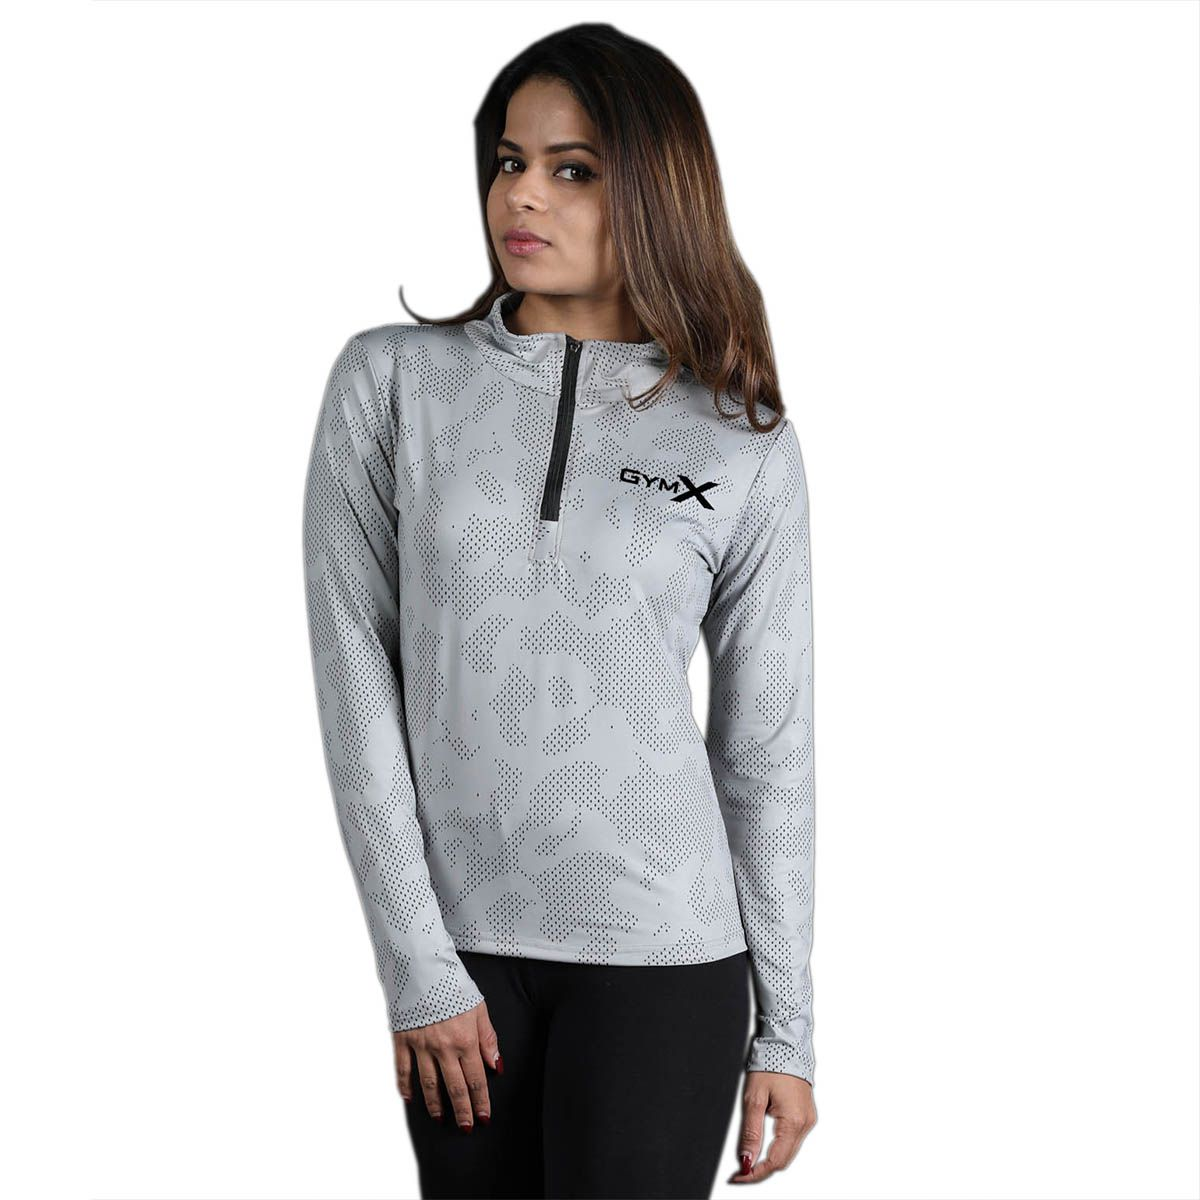 GymX Womens 1/4th Zip Pullover- Athena Series T shirt